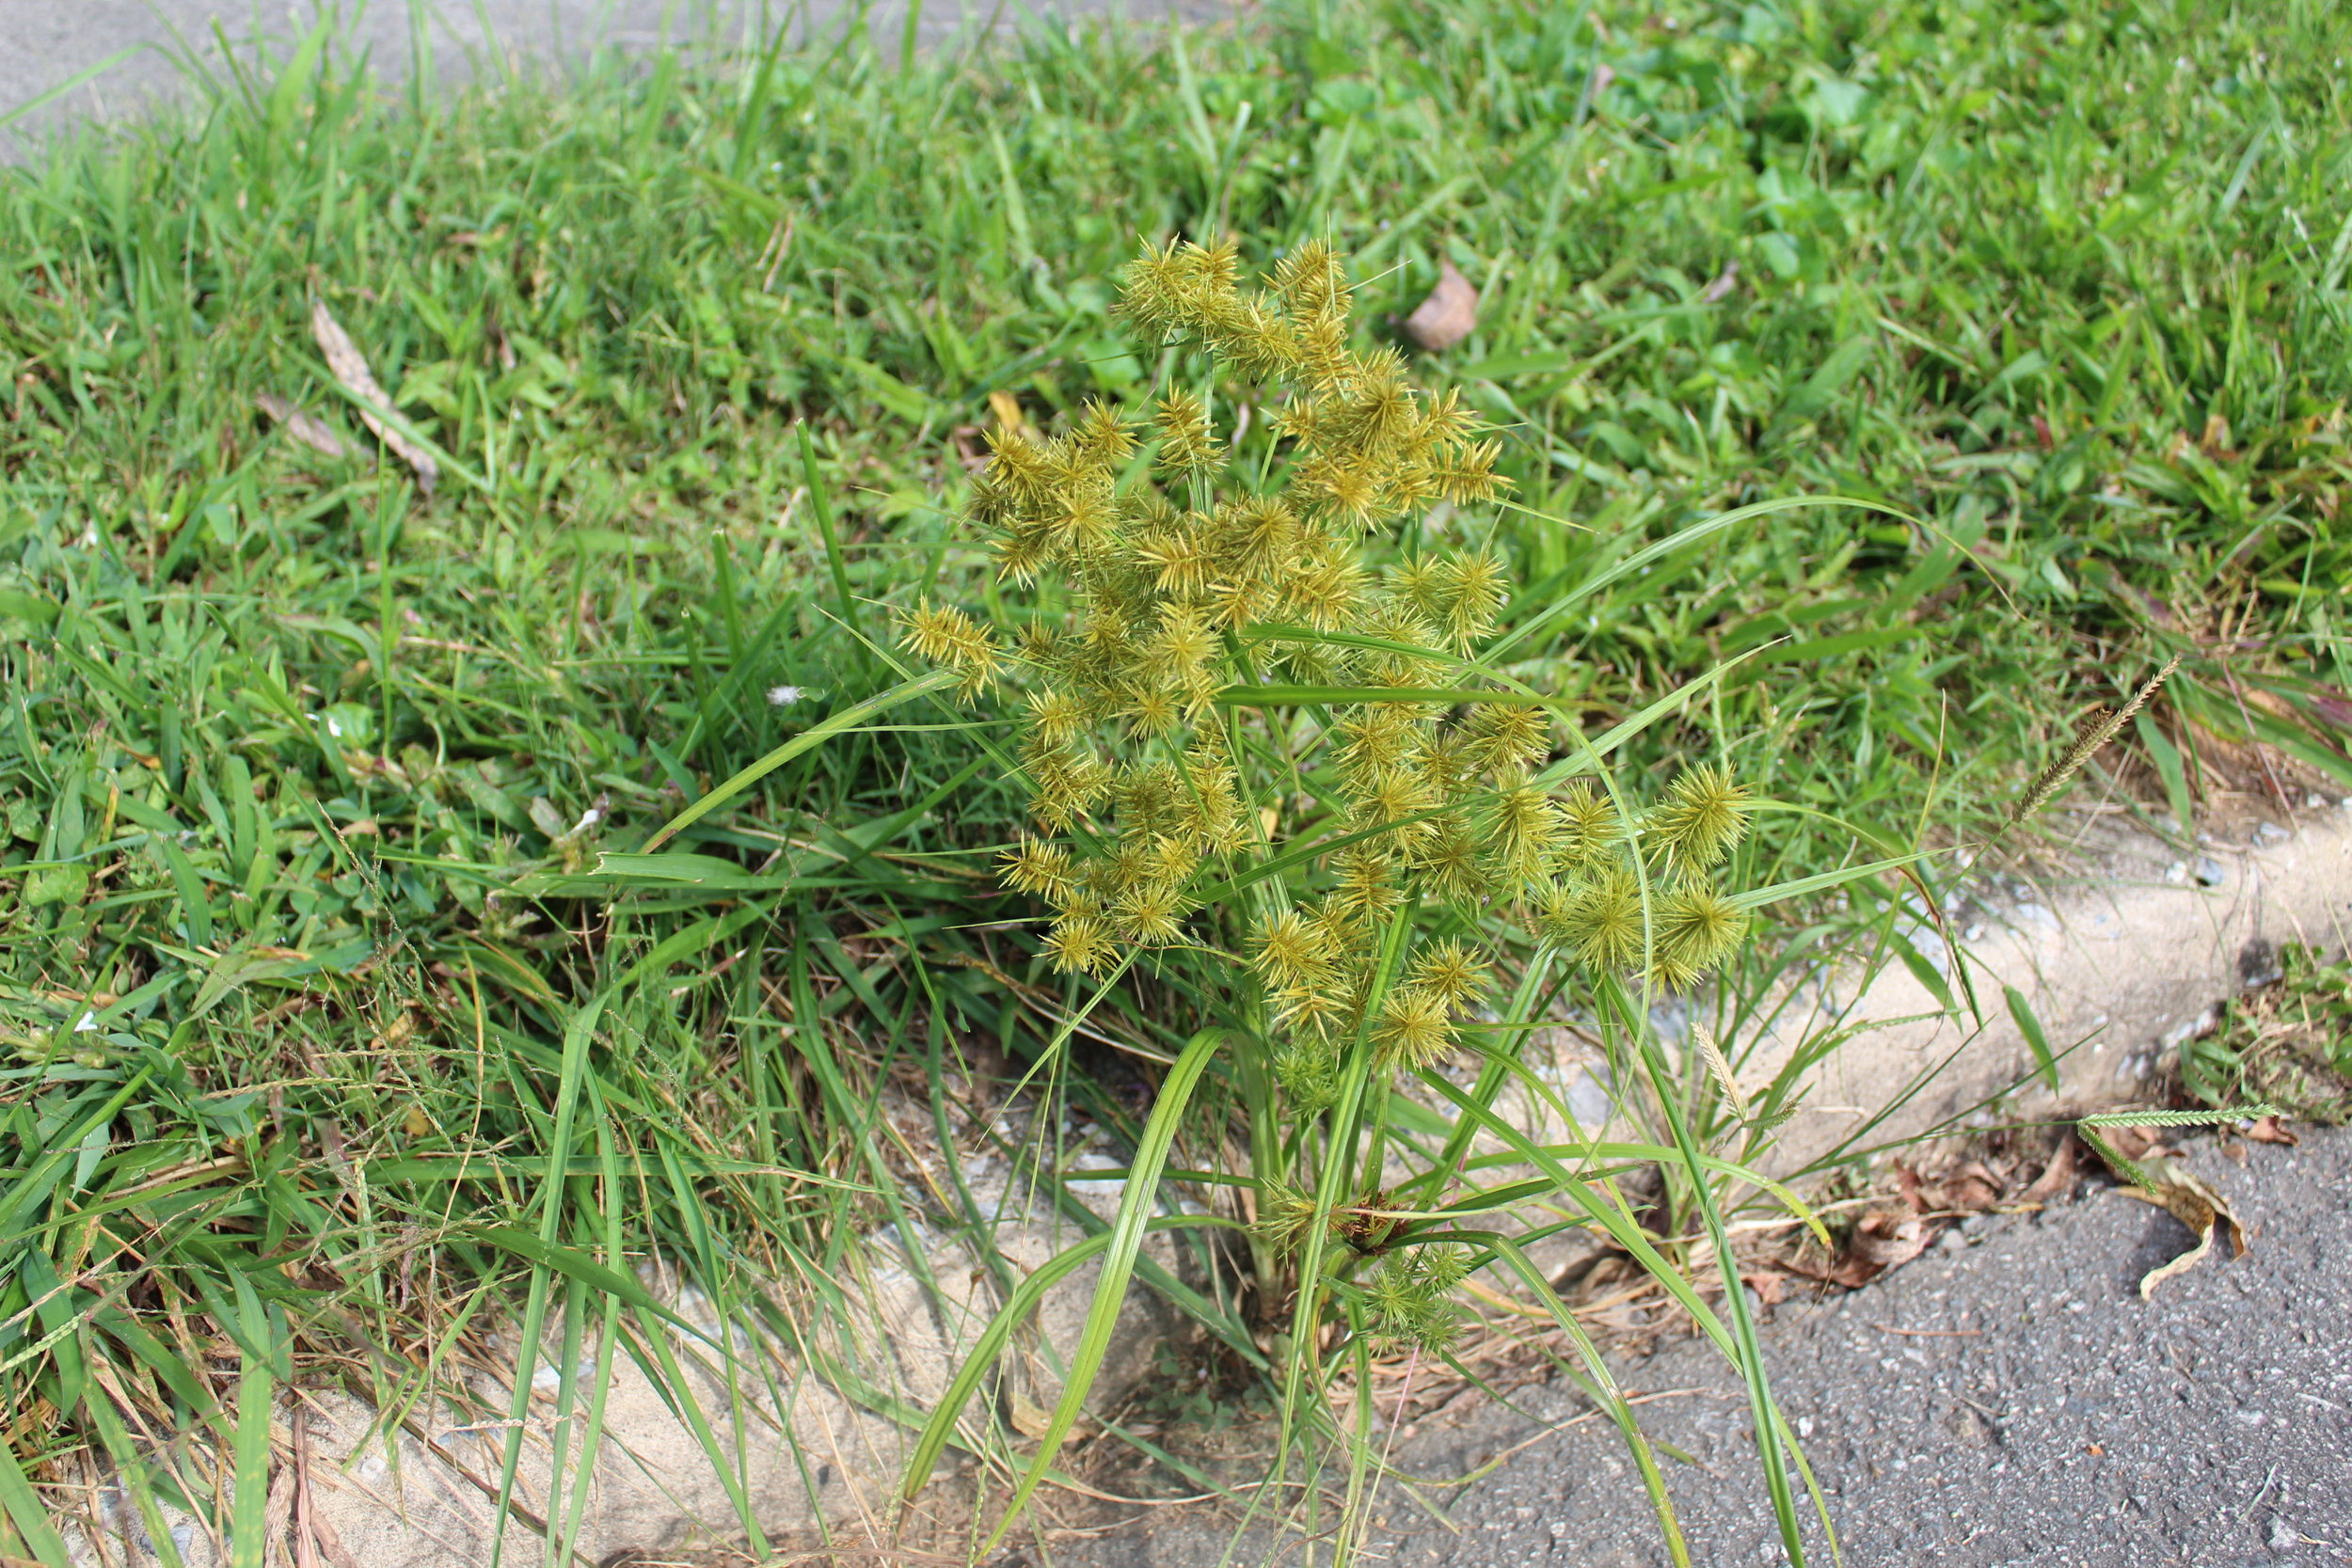 Yellow nutsedge or nutgrass,     Cyperus esculentus  , thrives in areas of poor drainage. You'll find it in places where water pools, and sprinklers are leaking (hence it's infestation in your lawn), but once established it can tolerate drier soils. Be sure to snip flower heads.   Click here   for more information on this weed.